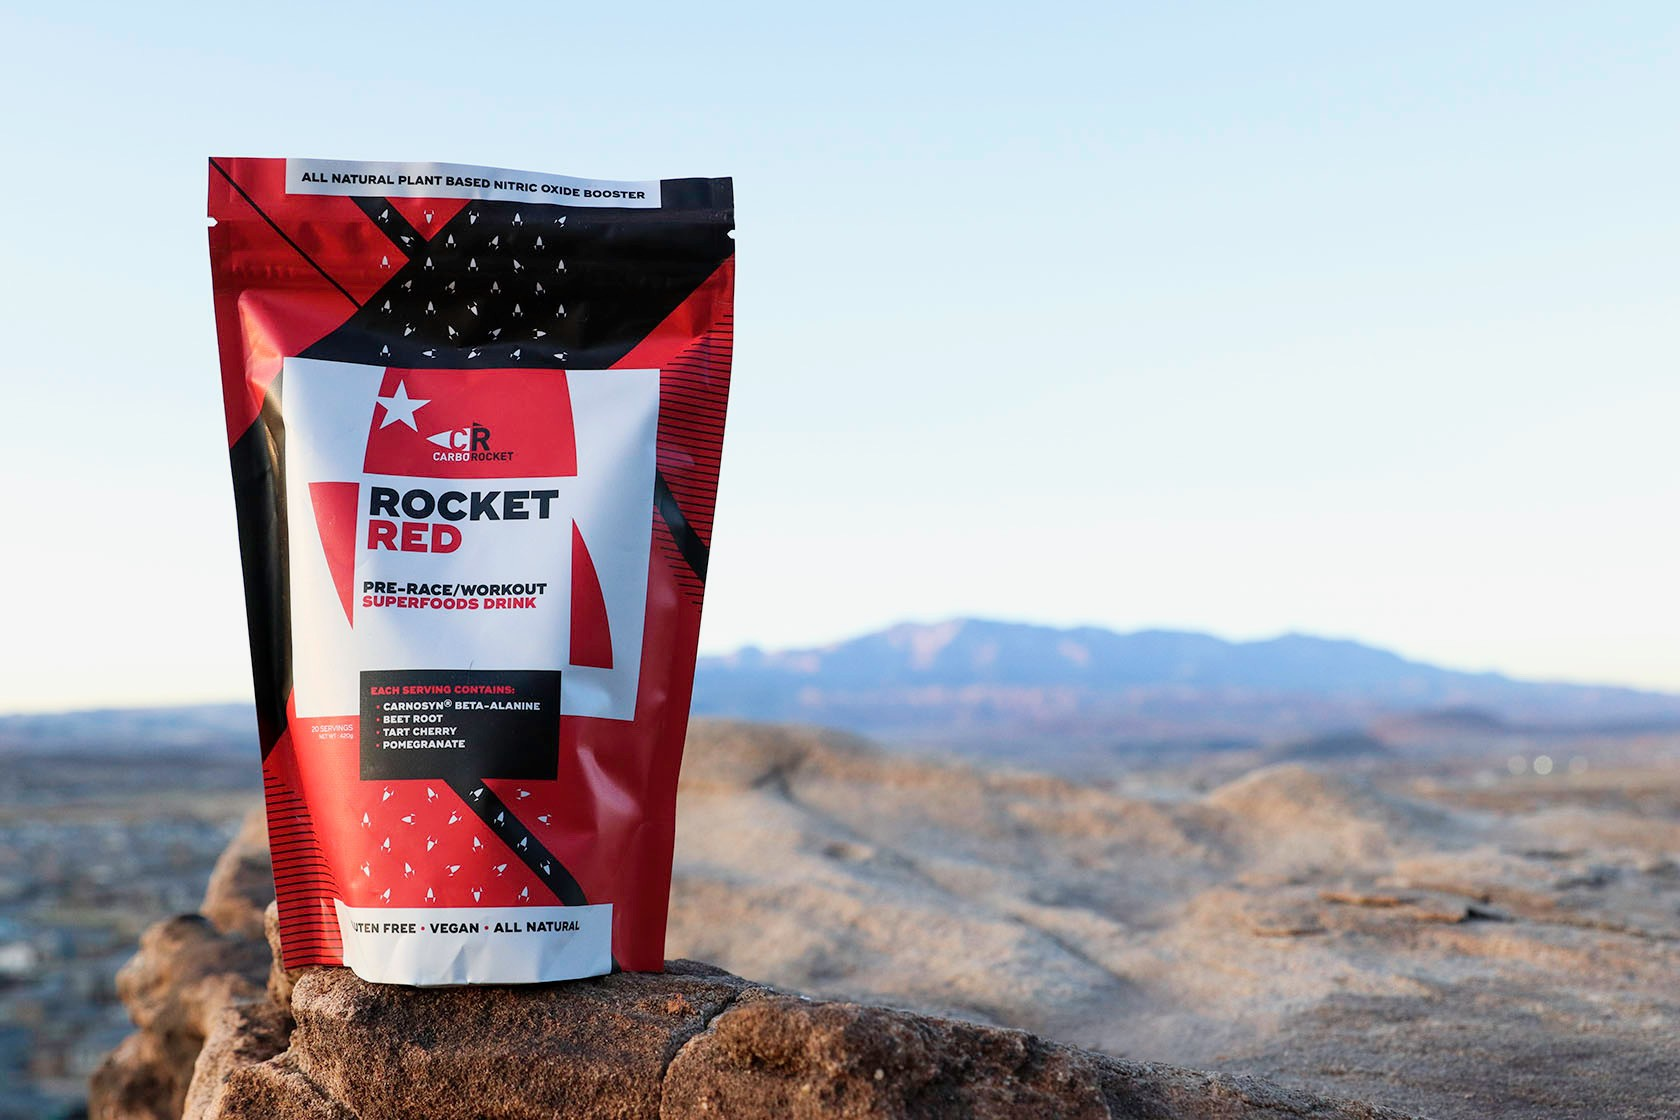 Rocket Red Pre-Workout/Race Superfoods Drink